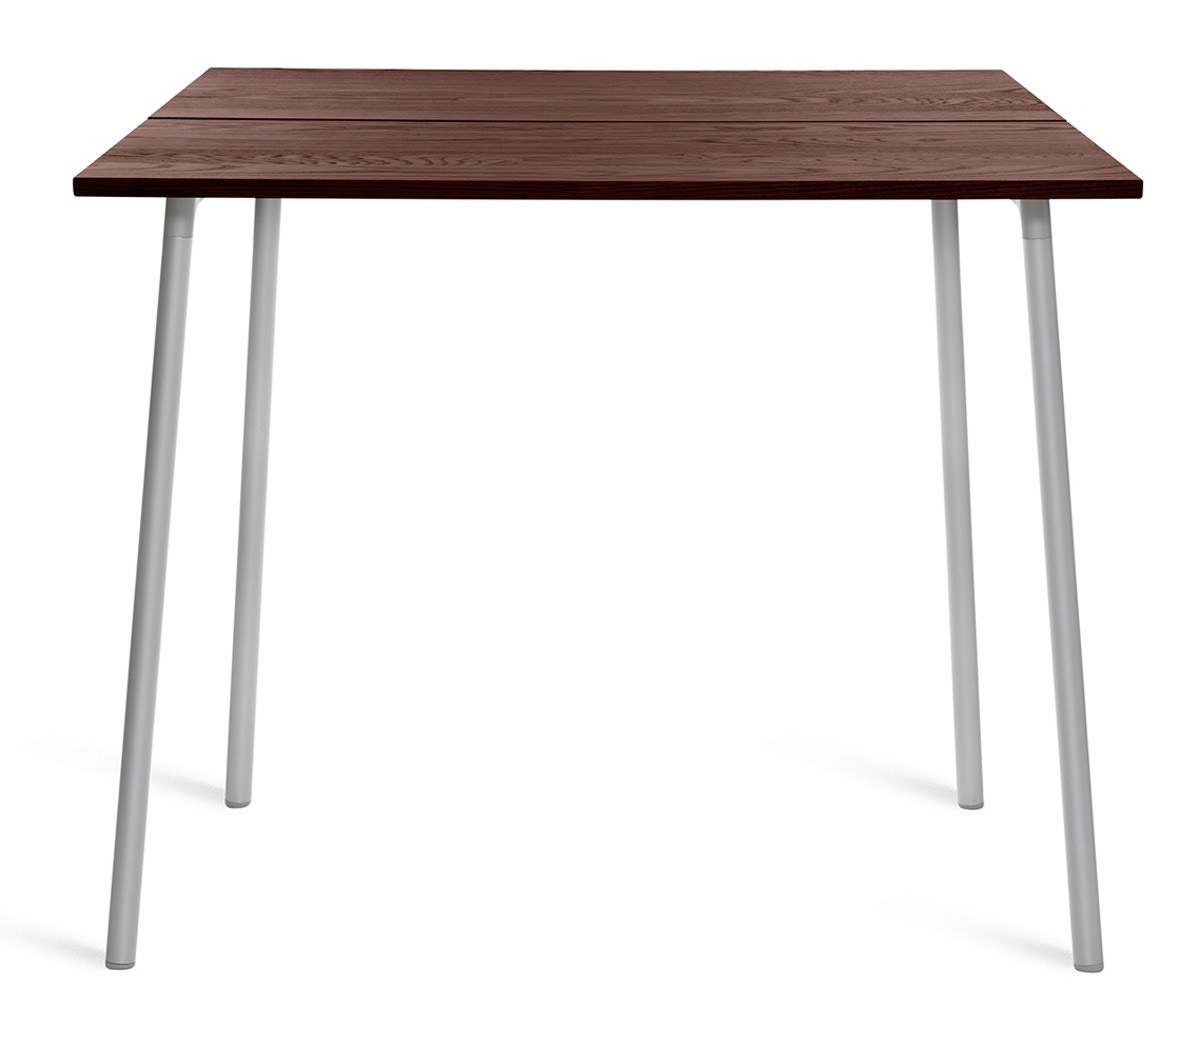 Emeco High Run Table 48 Inch